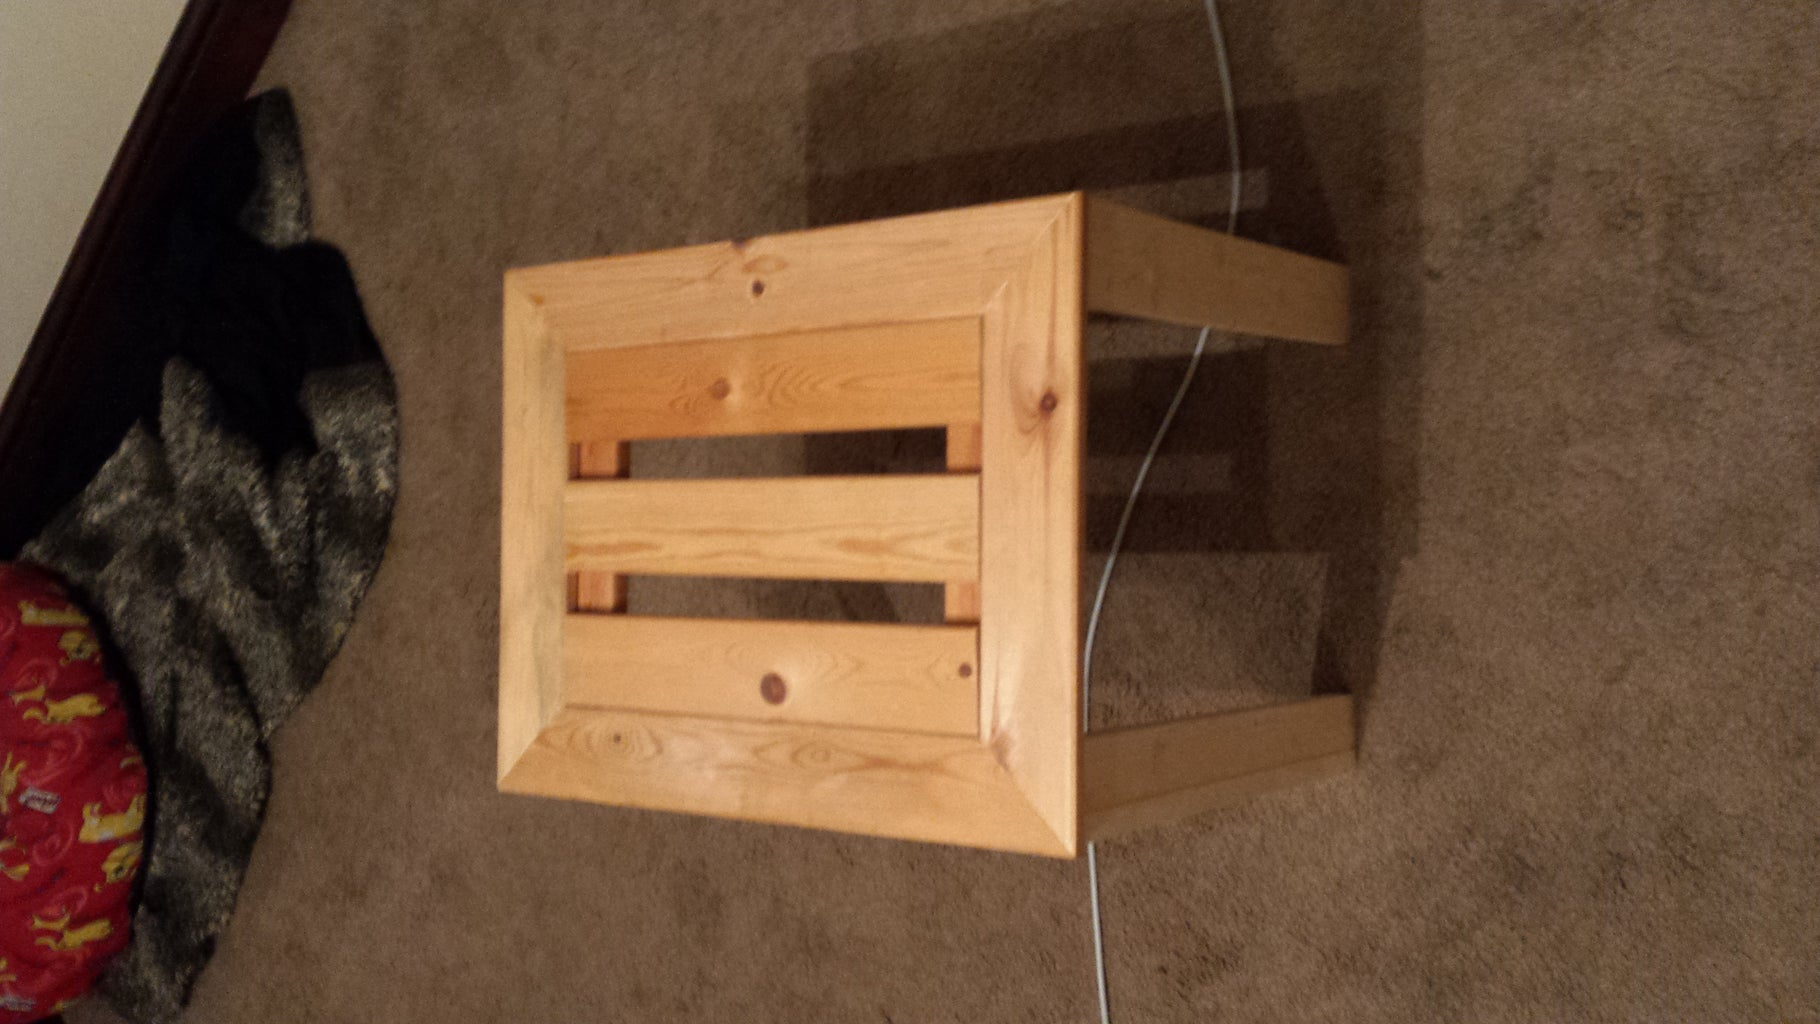 My First Woodworking Project!